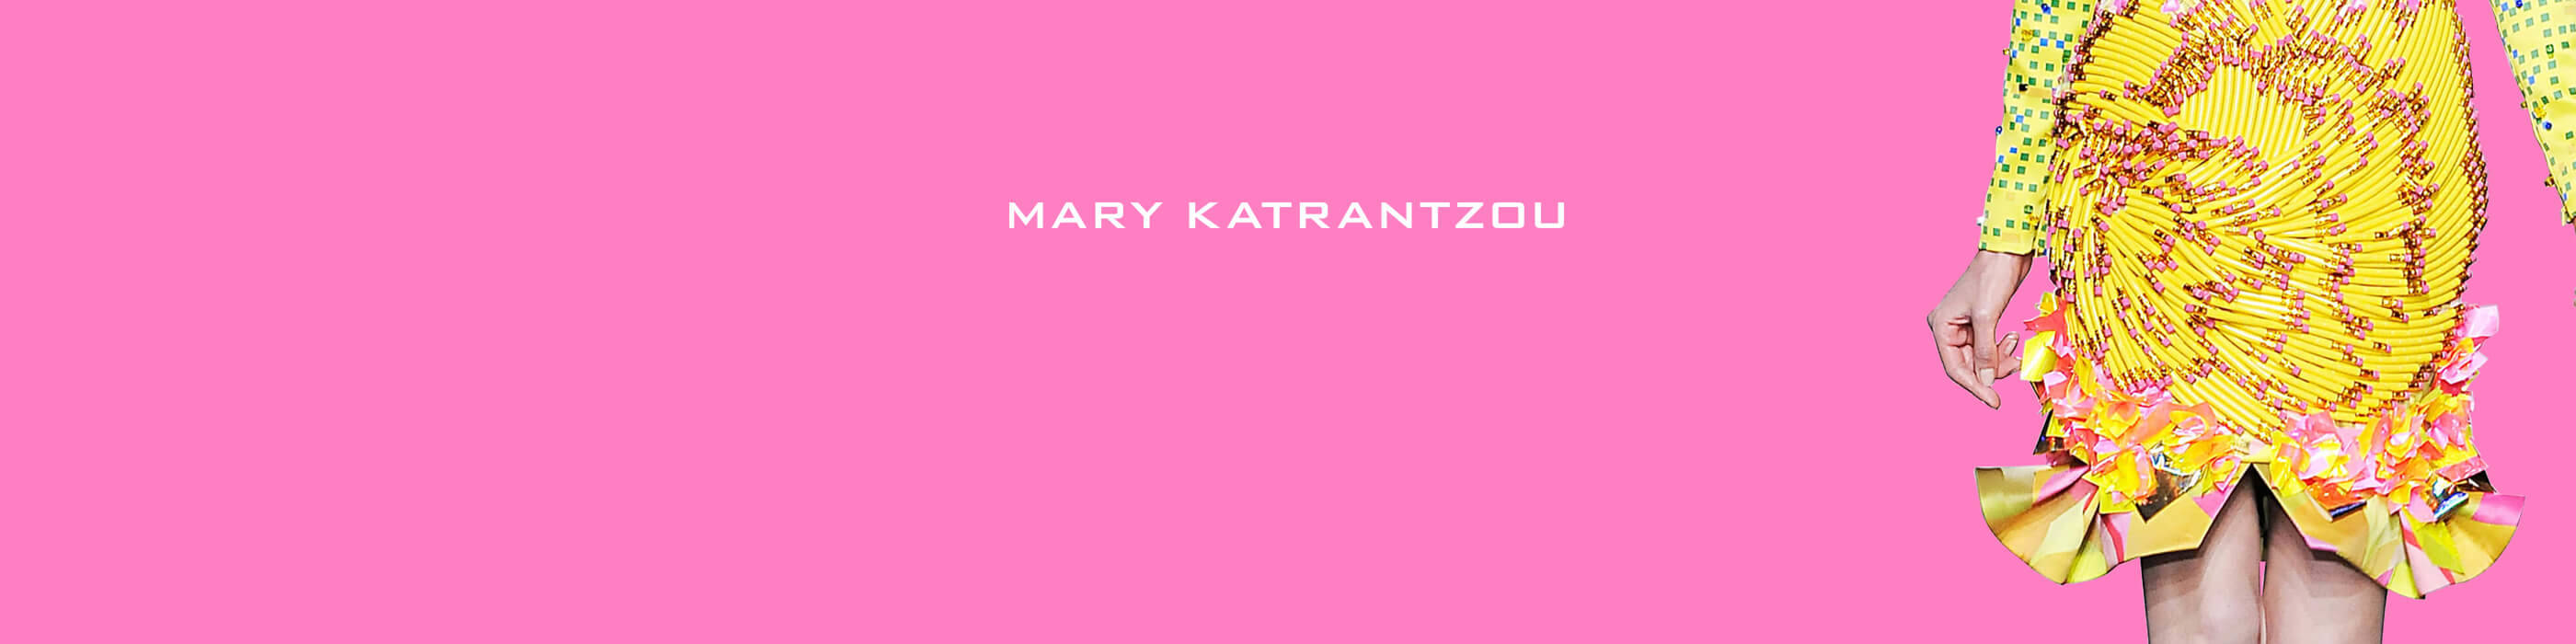 Mary Katrantzou for Paperless Post